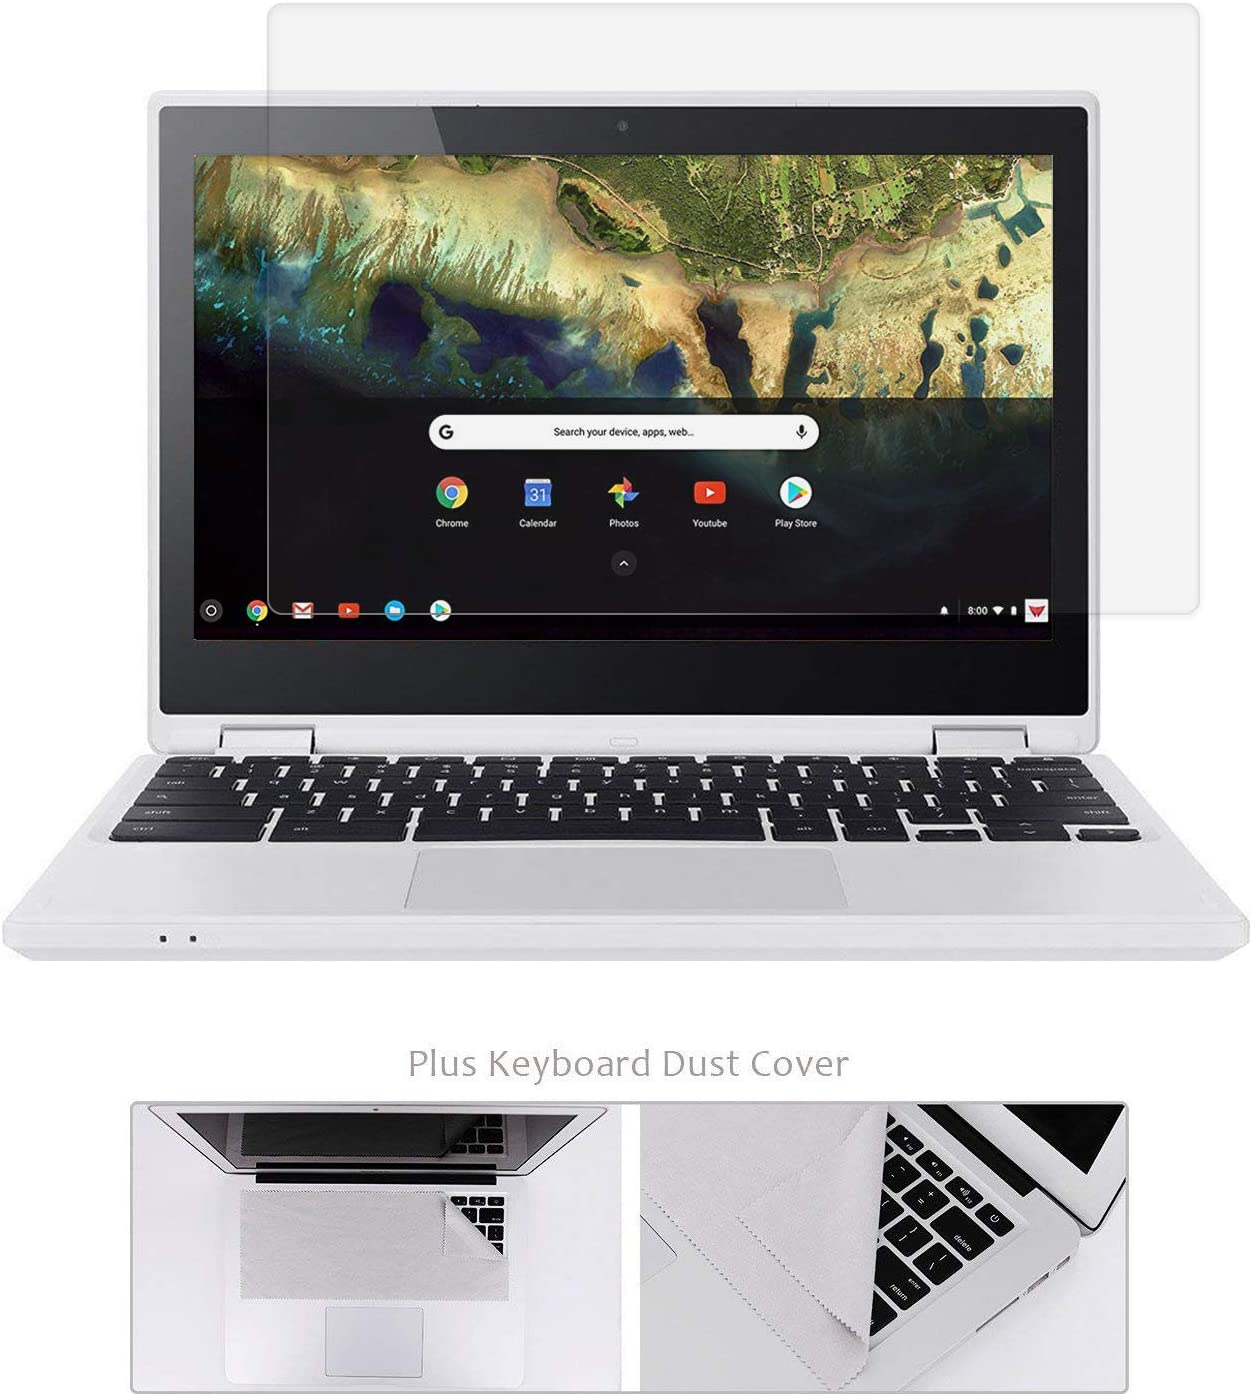 """11.6"""" Chromebook Glass Screen Protector Compatible with Acer Chromebook R11 /Lenovo Chromebook C330 /ASUS Chromebook 11.6"""" /Samsung Chromebook 3 11.6"""" /Dell ChromeBook 11/HP ChromeBook 11"""